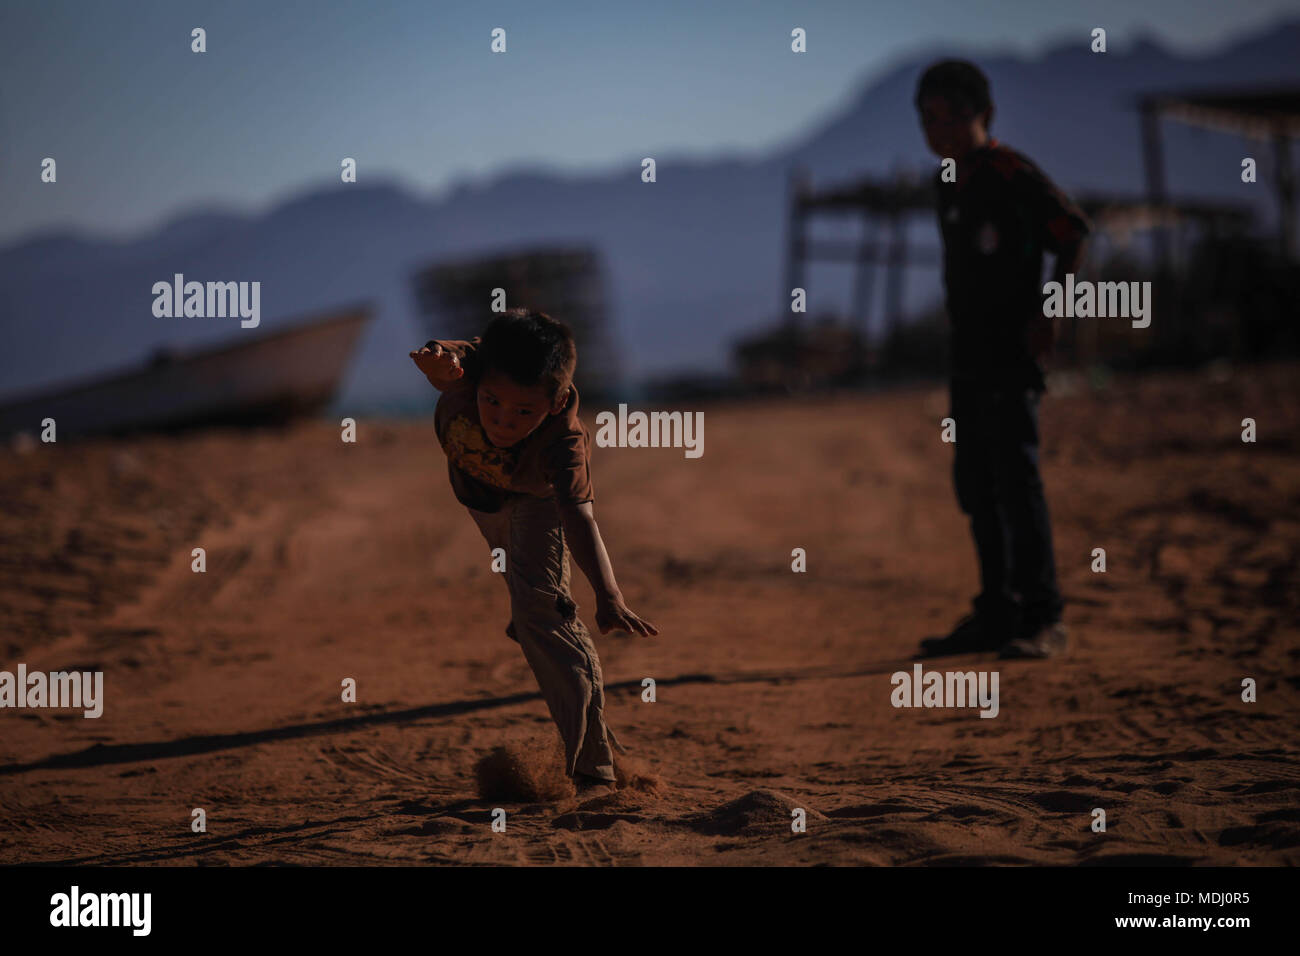 child of indigenous tribe Seri or Conca'ac, Concaac, jumps from a fishing boat or panga and from the ground in the town of Punta Chueca, Sonora. Shark - Stock Image